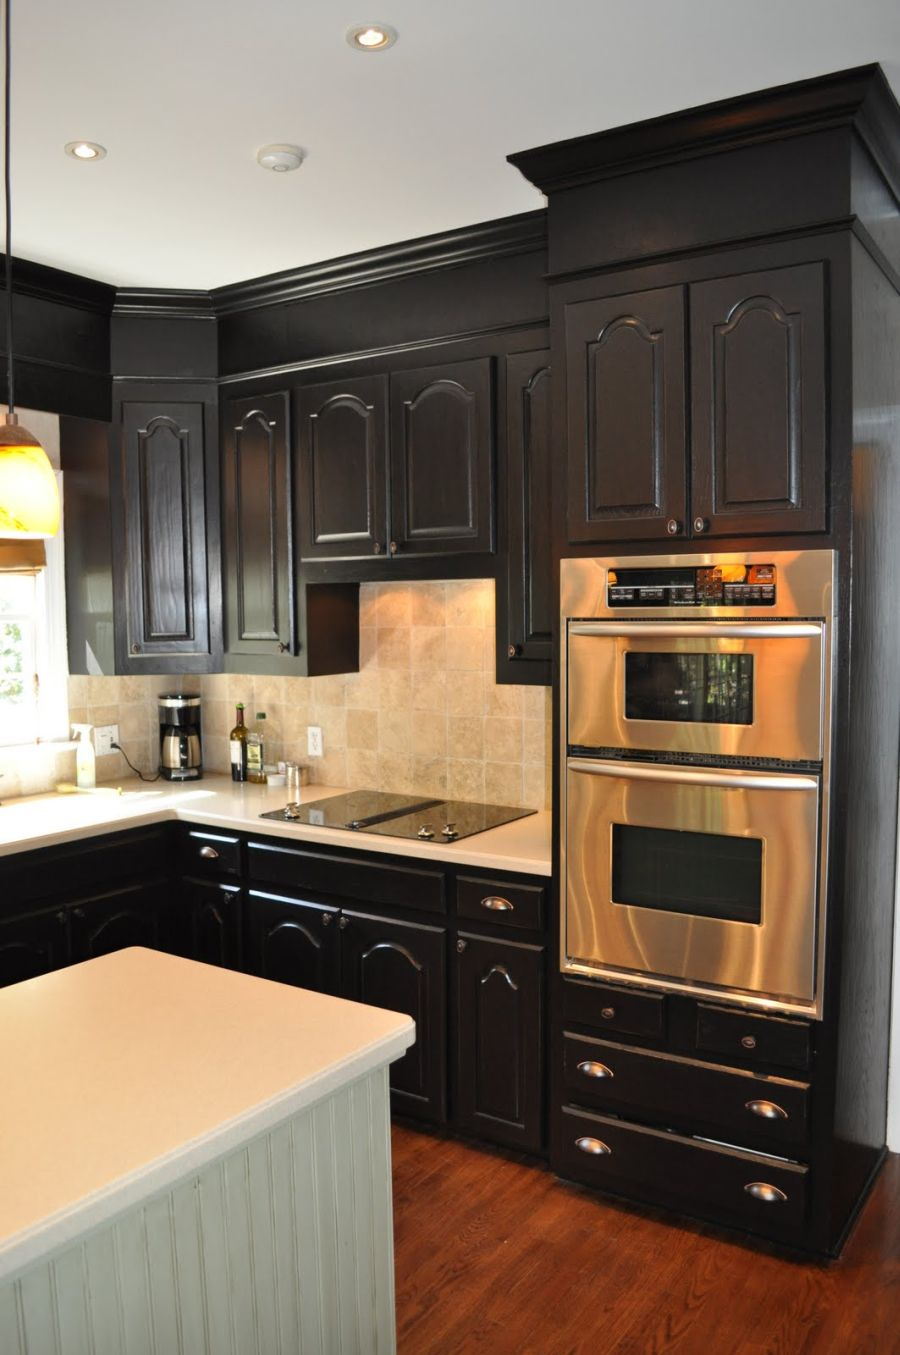 black kitchen cabinets kitchen cabinets Black Cabinets with Soffits